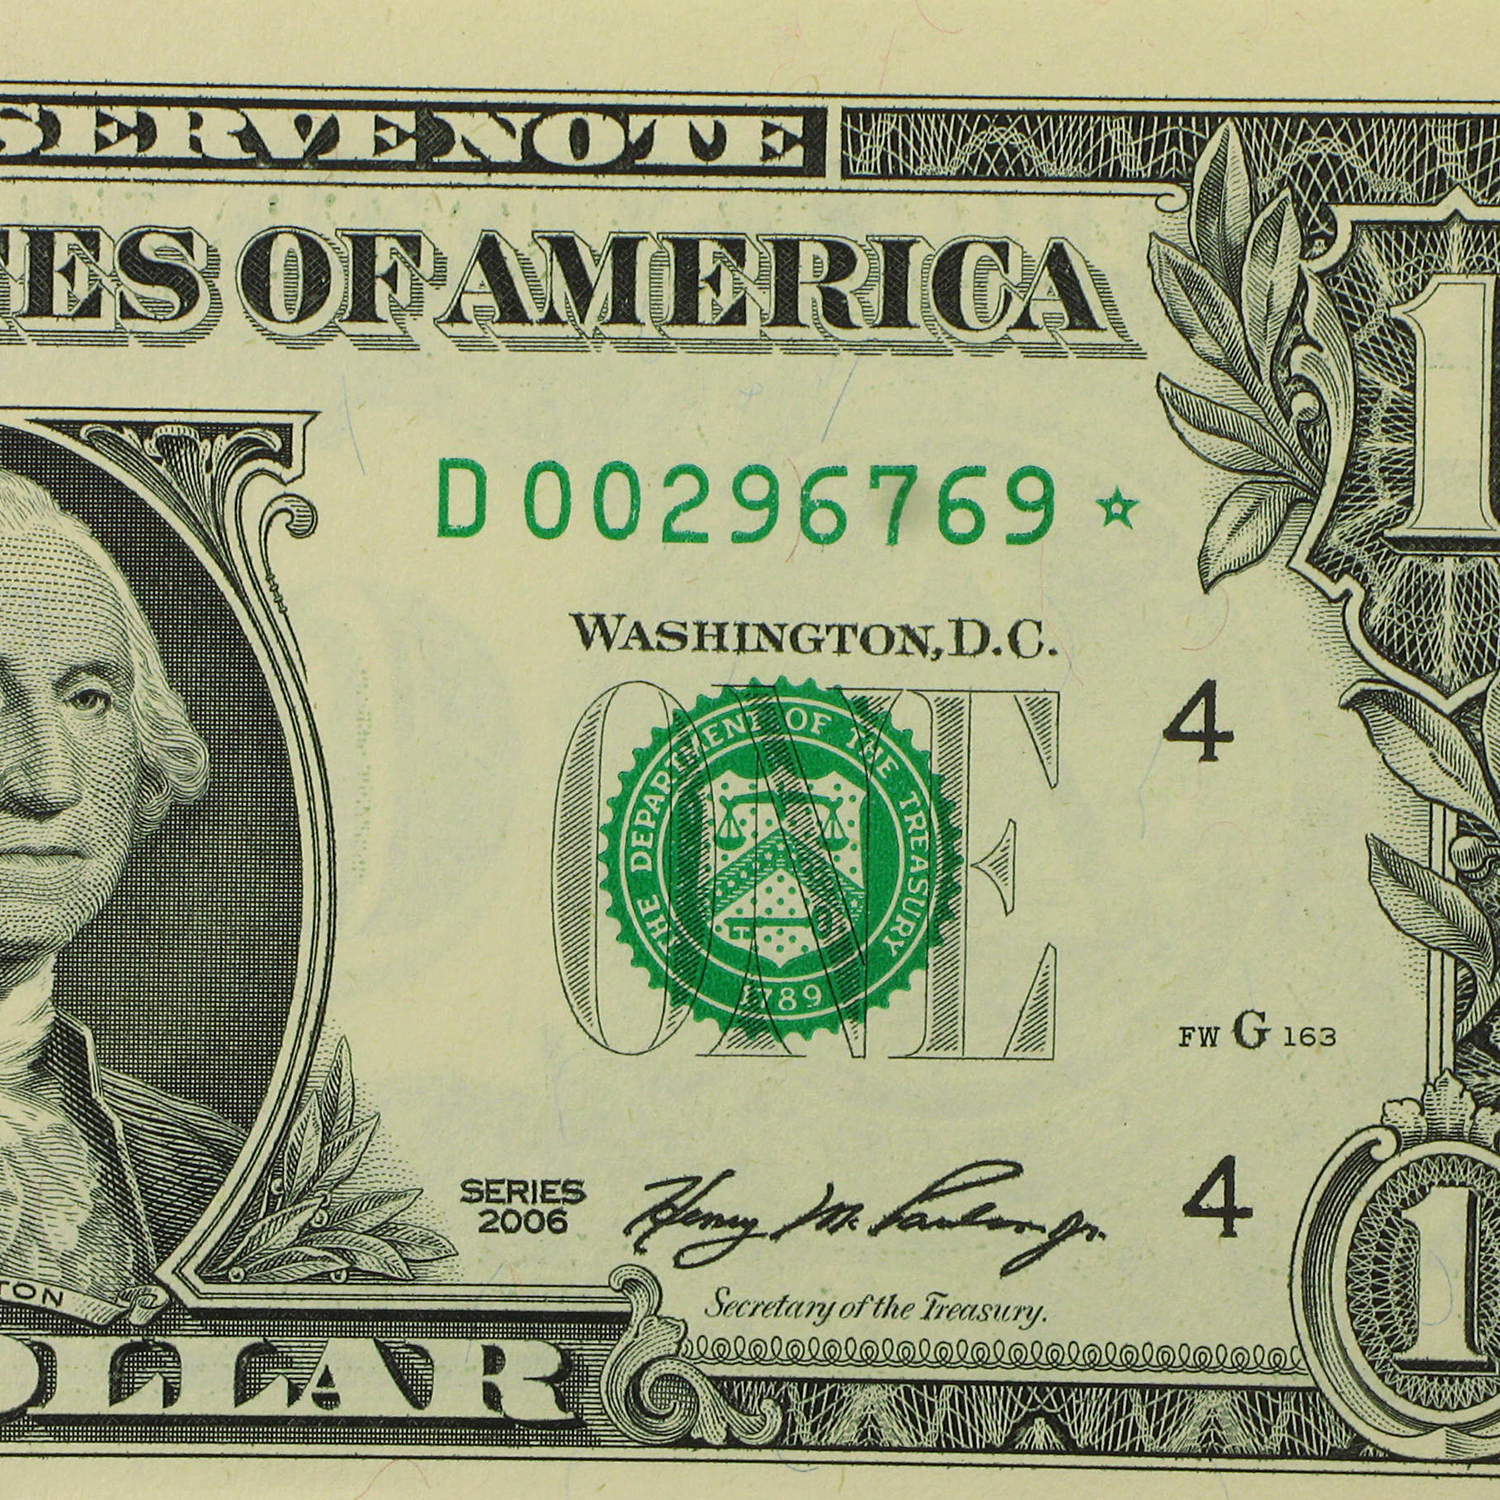 2006* (D-Cleveland) $1.00 FRN GEM CU (Star Note)